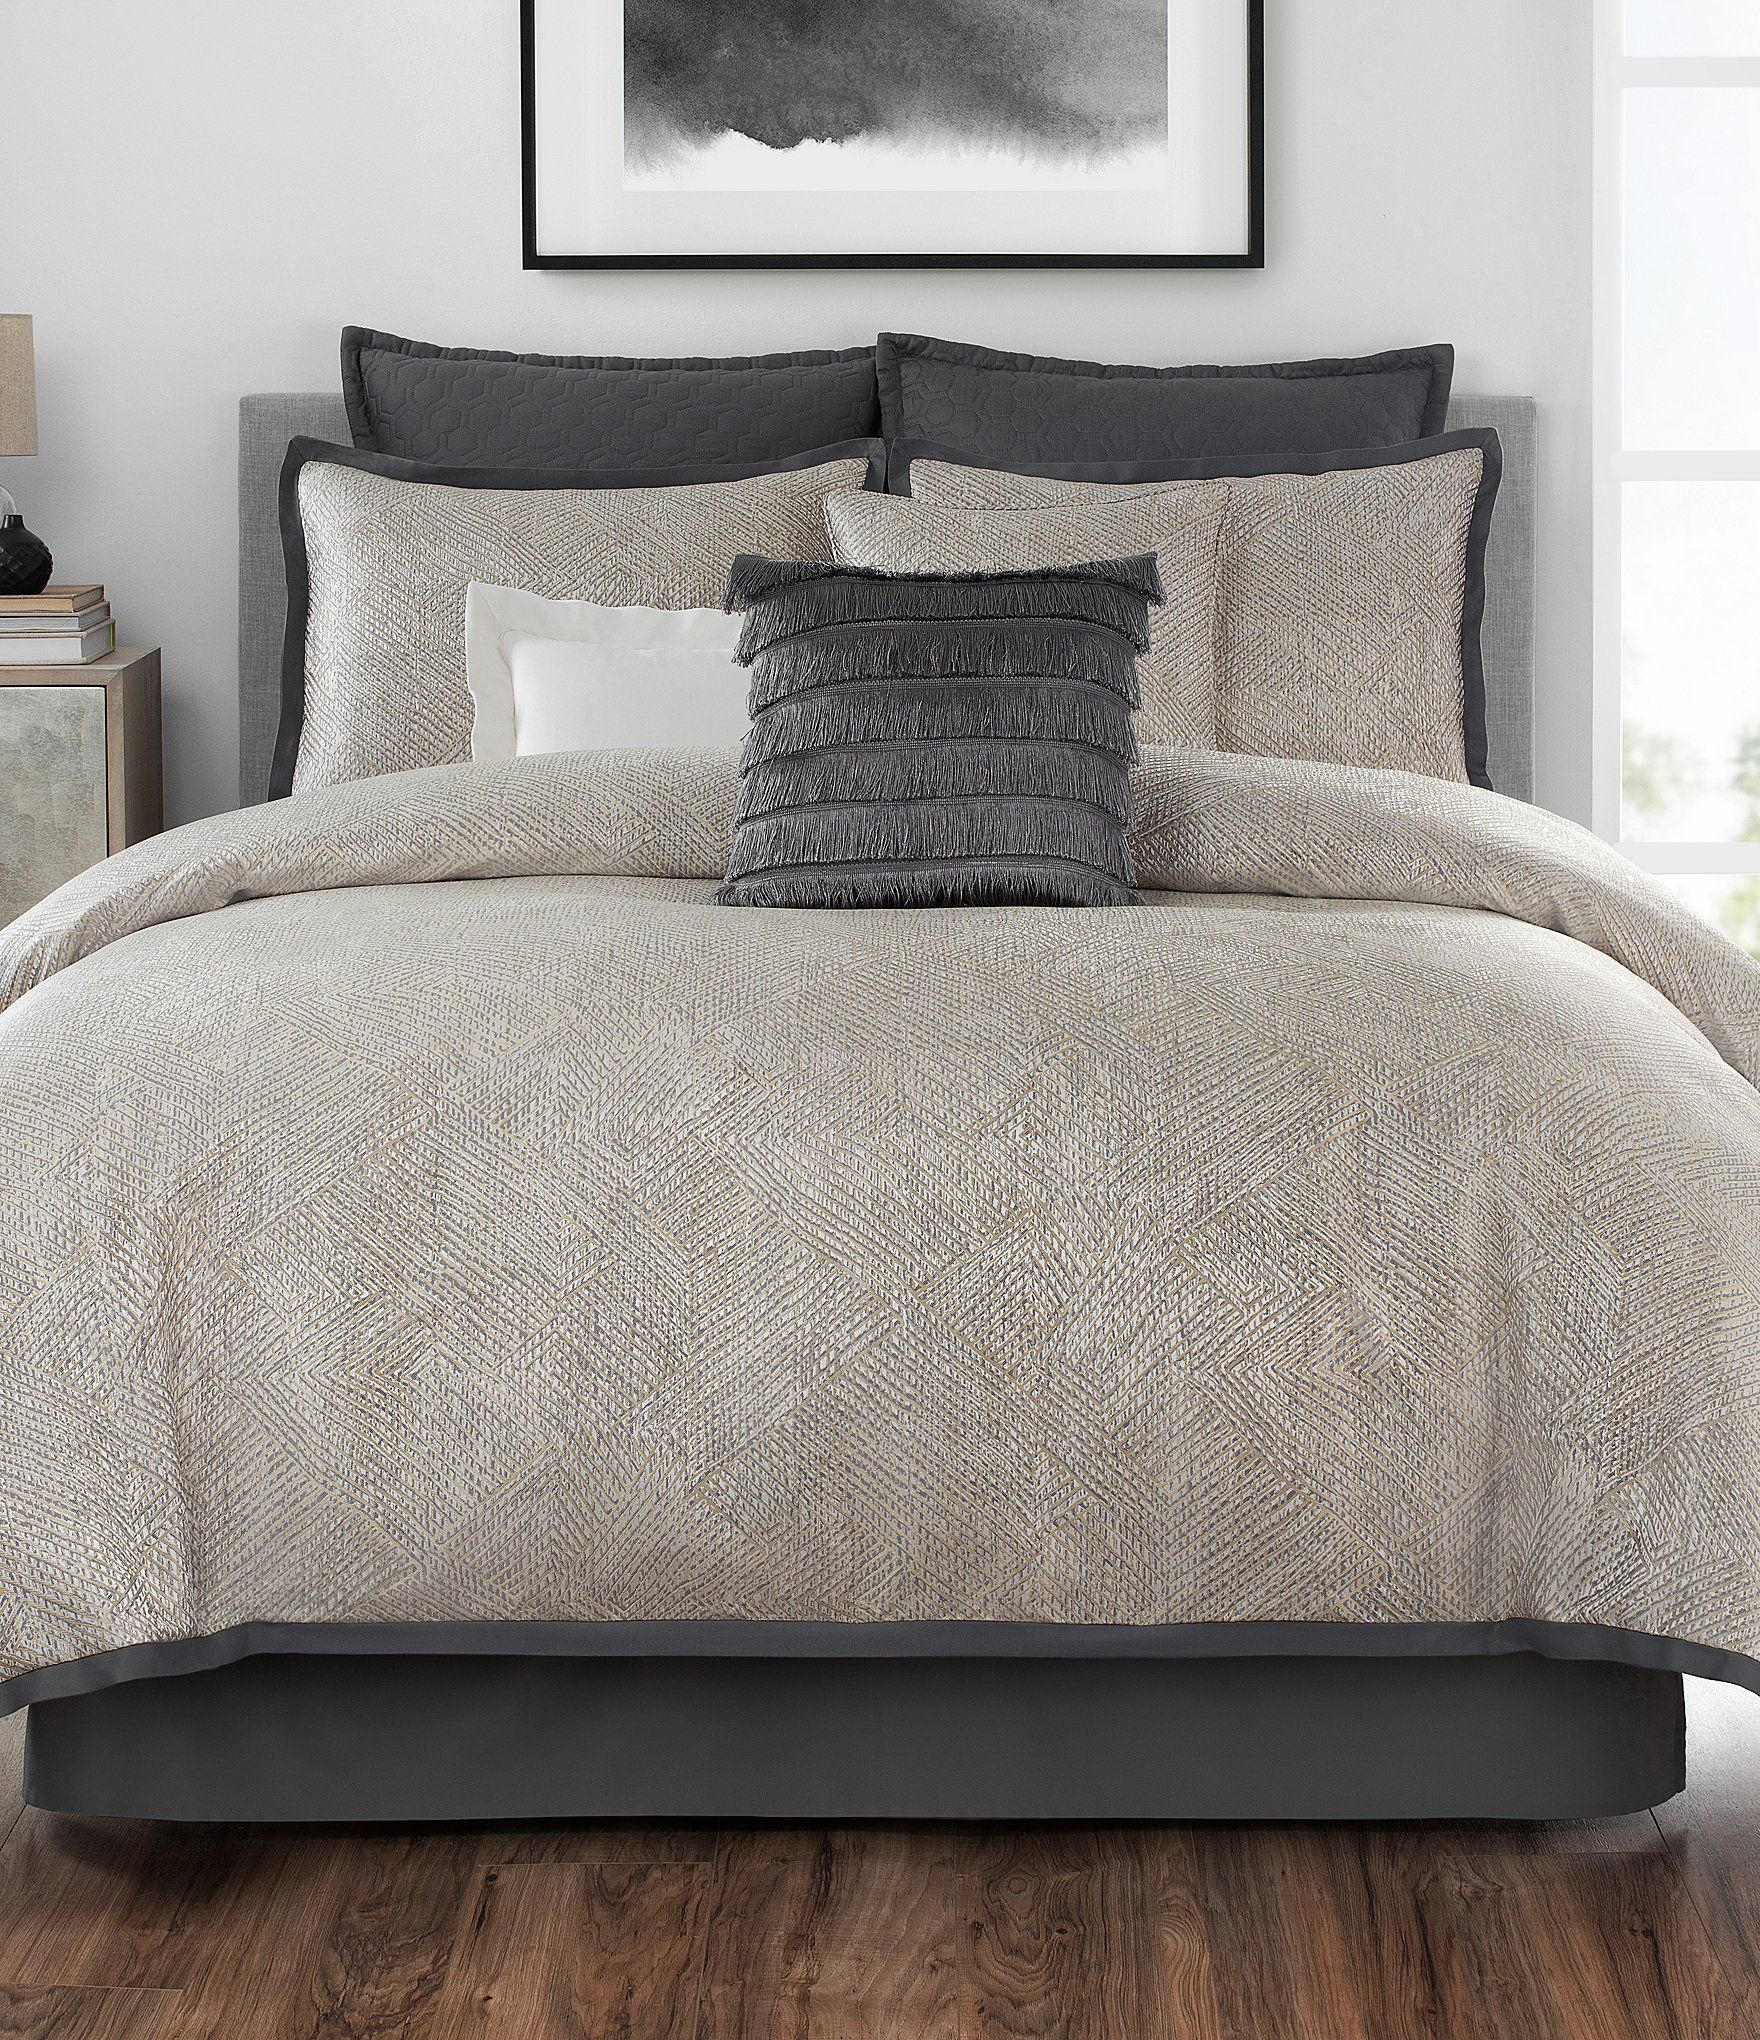 Shop For Laundry By Shelli Segal Crawford Comforter Set At Dillard S Visit Dillard S To Find Clothing Acc Comforter Sets Queen Comforter Queen Comforter Sets